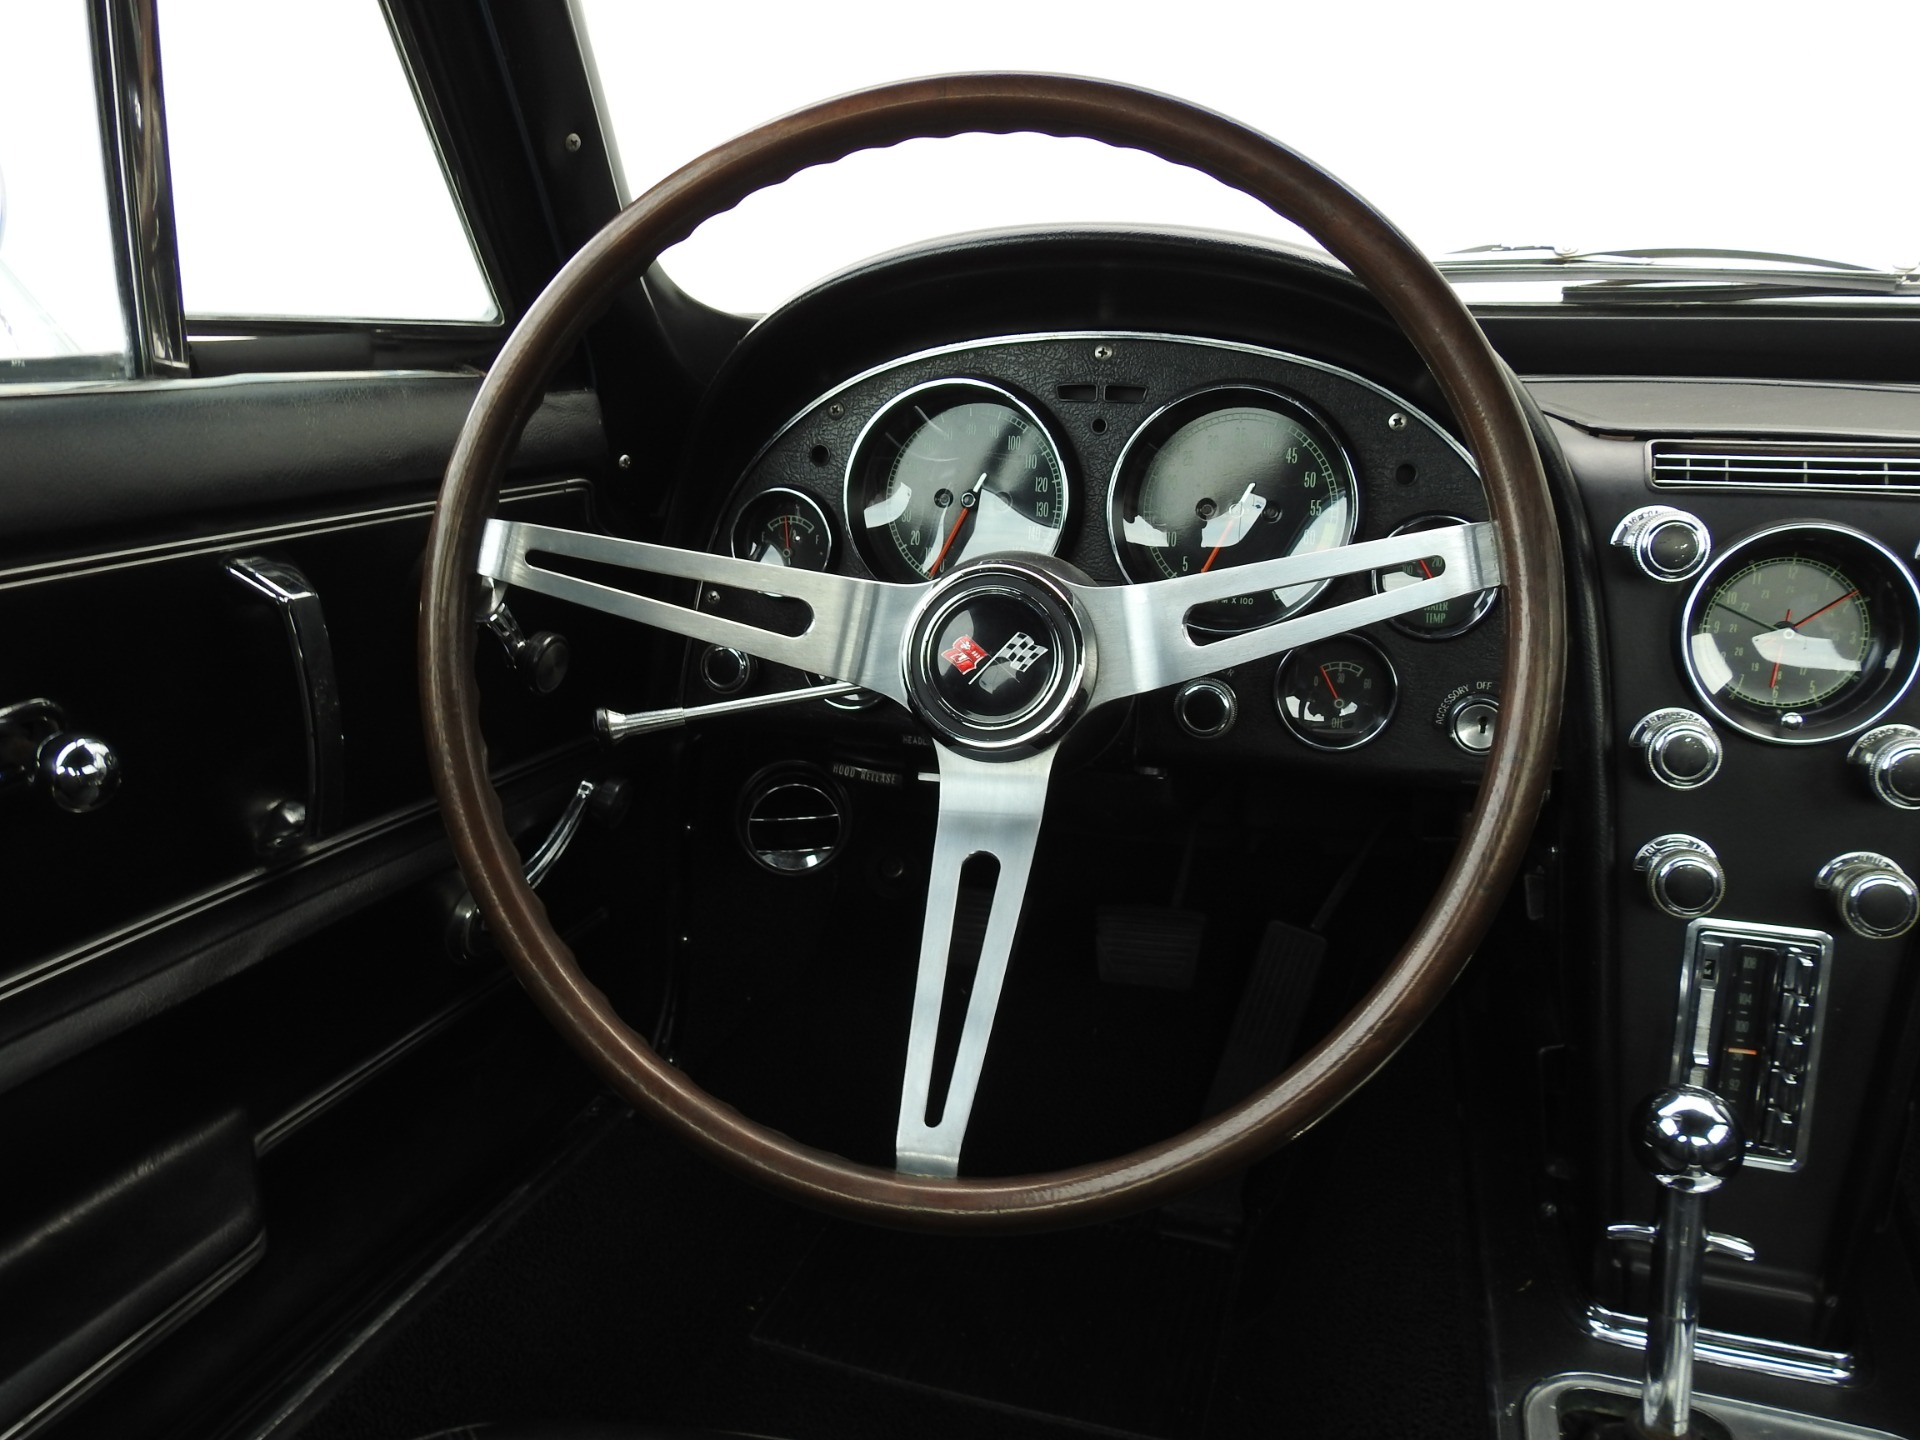 Used-1967-Chevrolet-Corvette-Coupe-L79-**-67000-Original-Miles-**-Jackson-MS